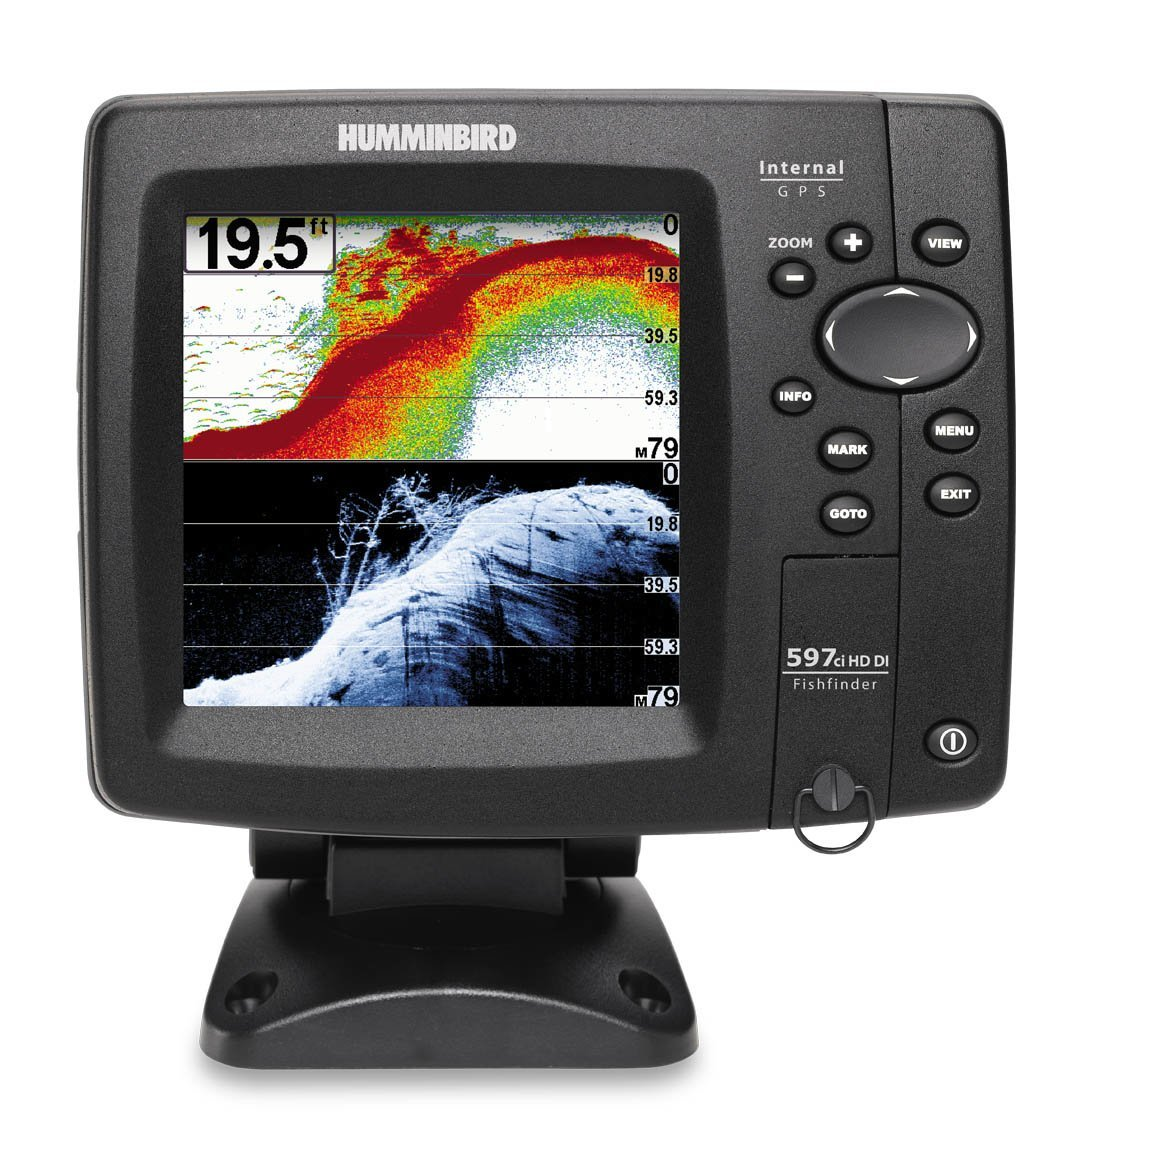 Humminbird 597ci hd di review fish finder guy for Humminbird portable fish finder